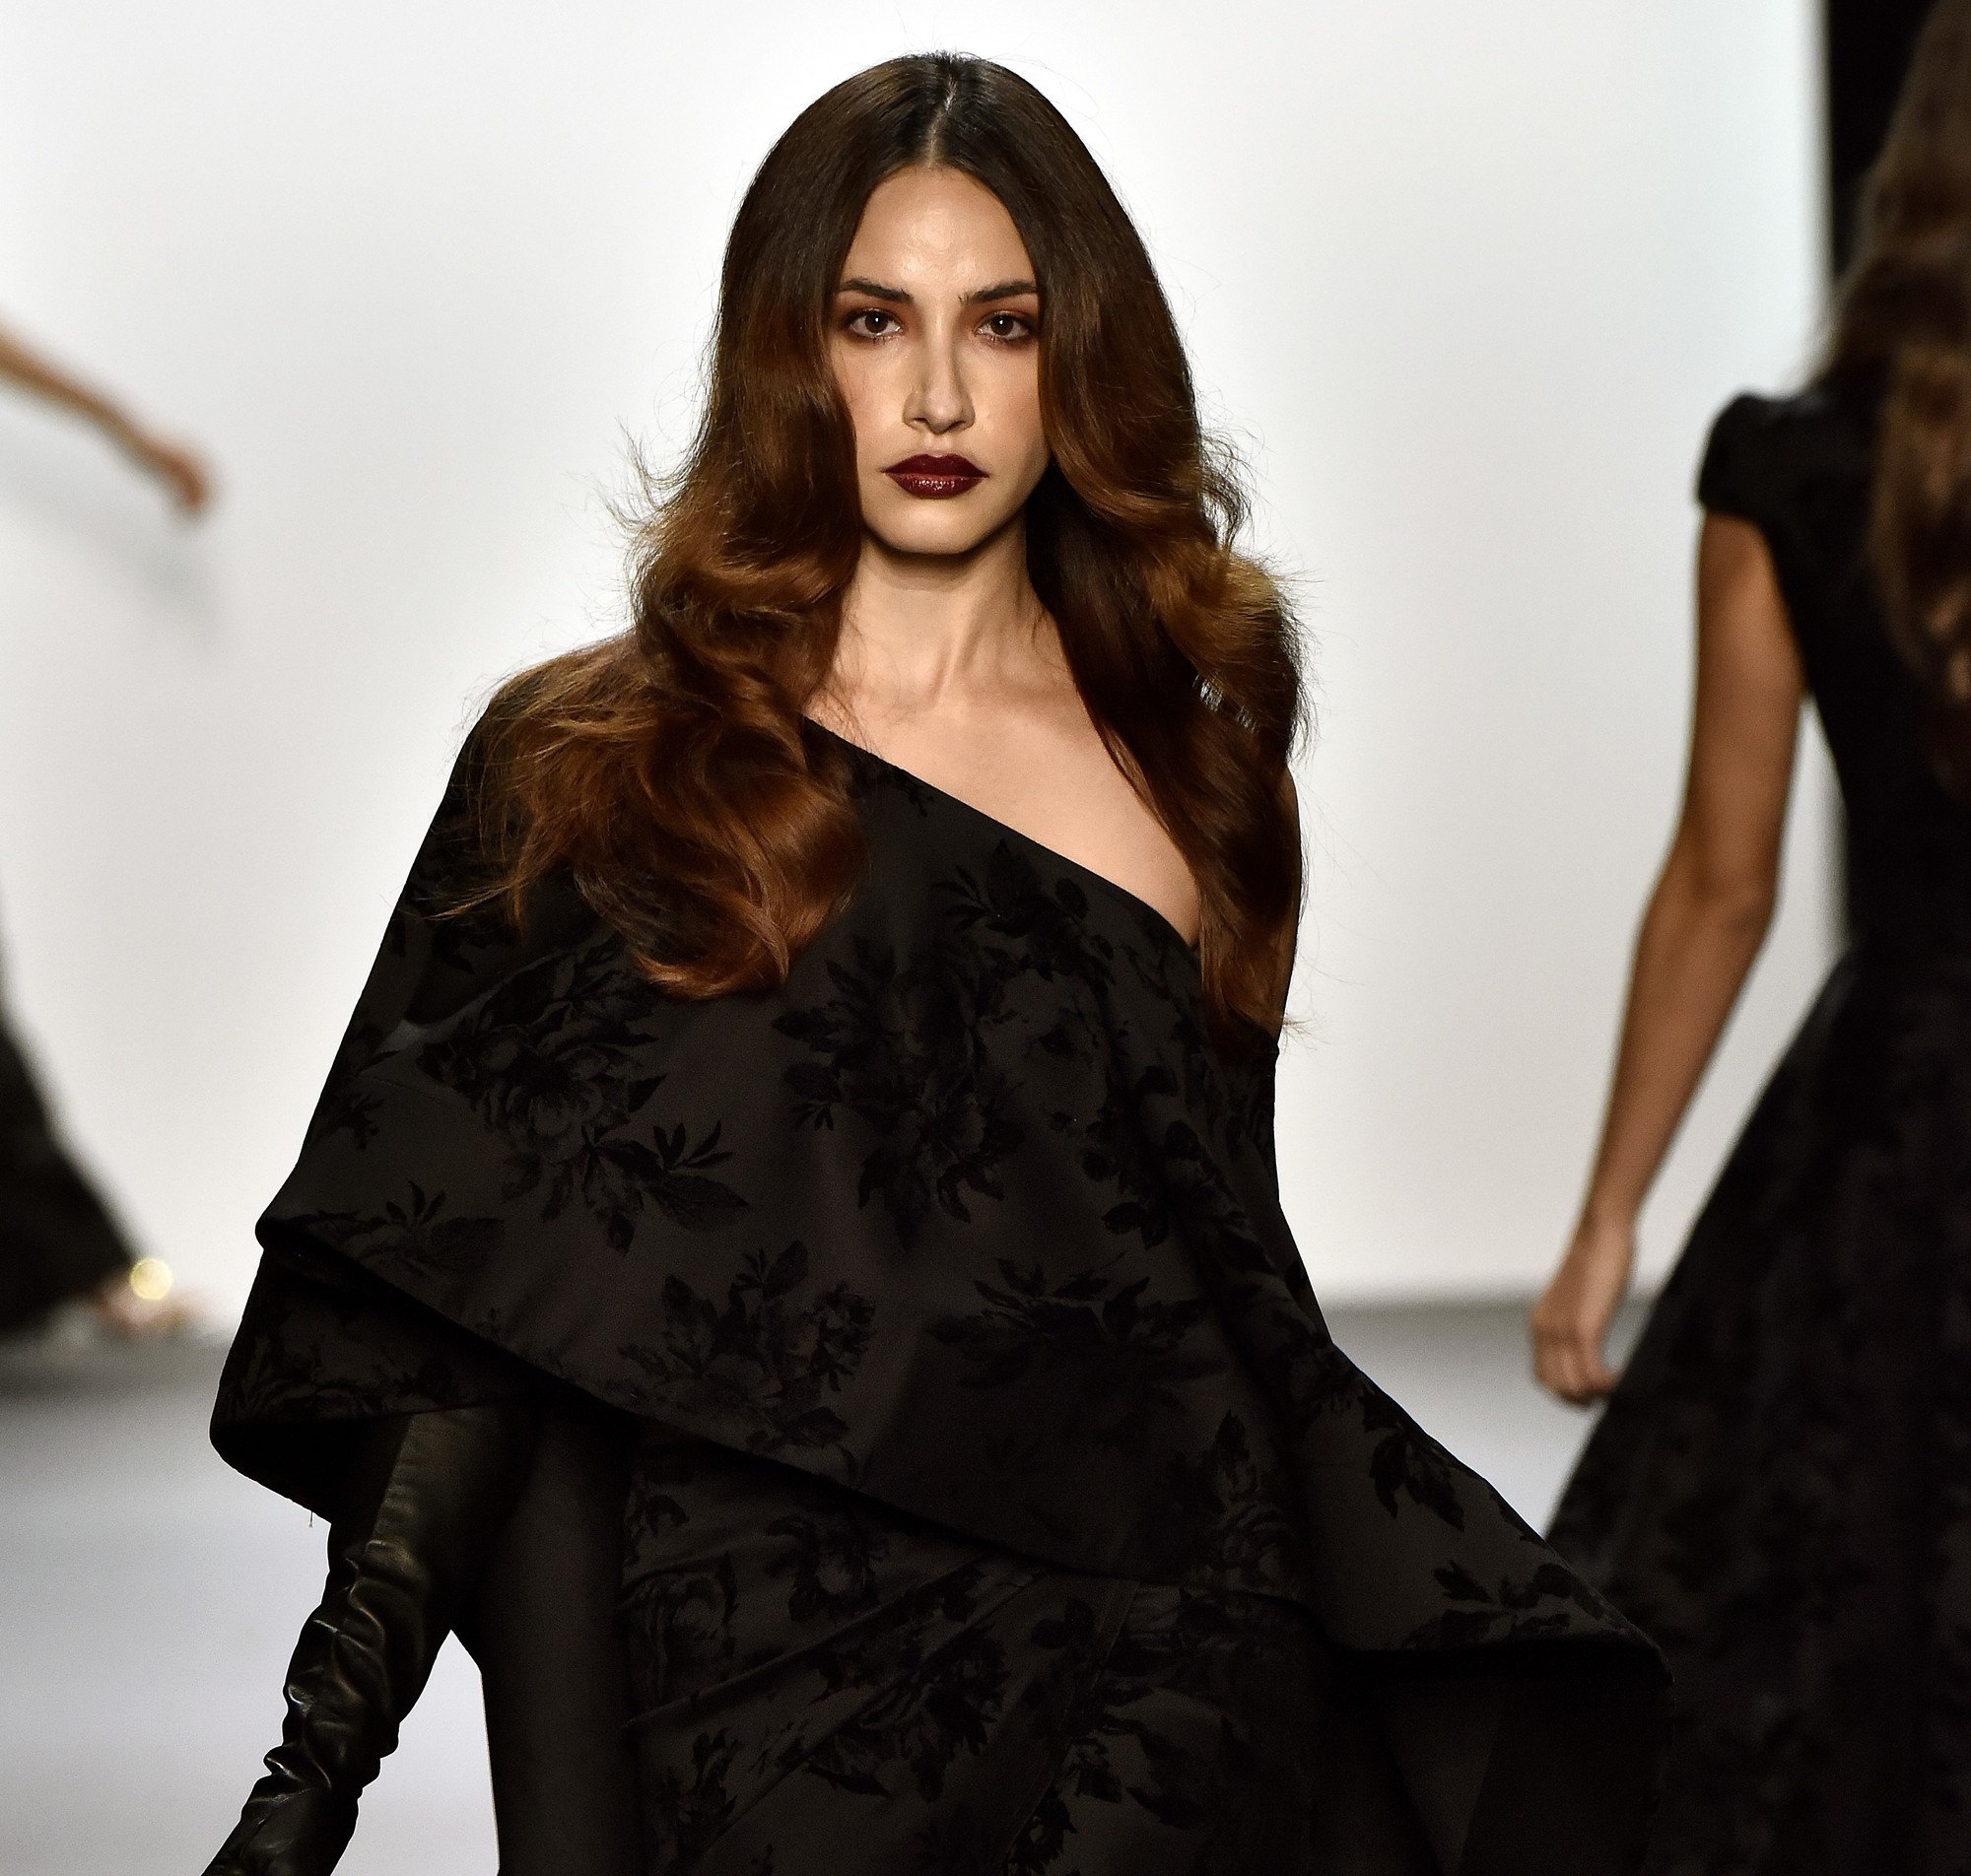 easy vintage hairstyles: close up shot of model on the Michael Costello runway with glamorous Hollywood waves, wearing all black